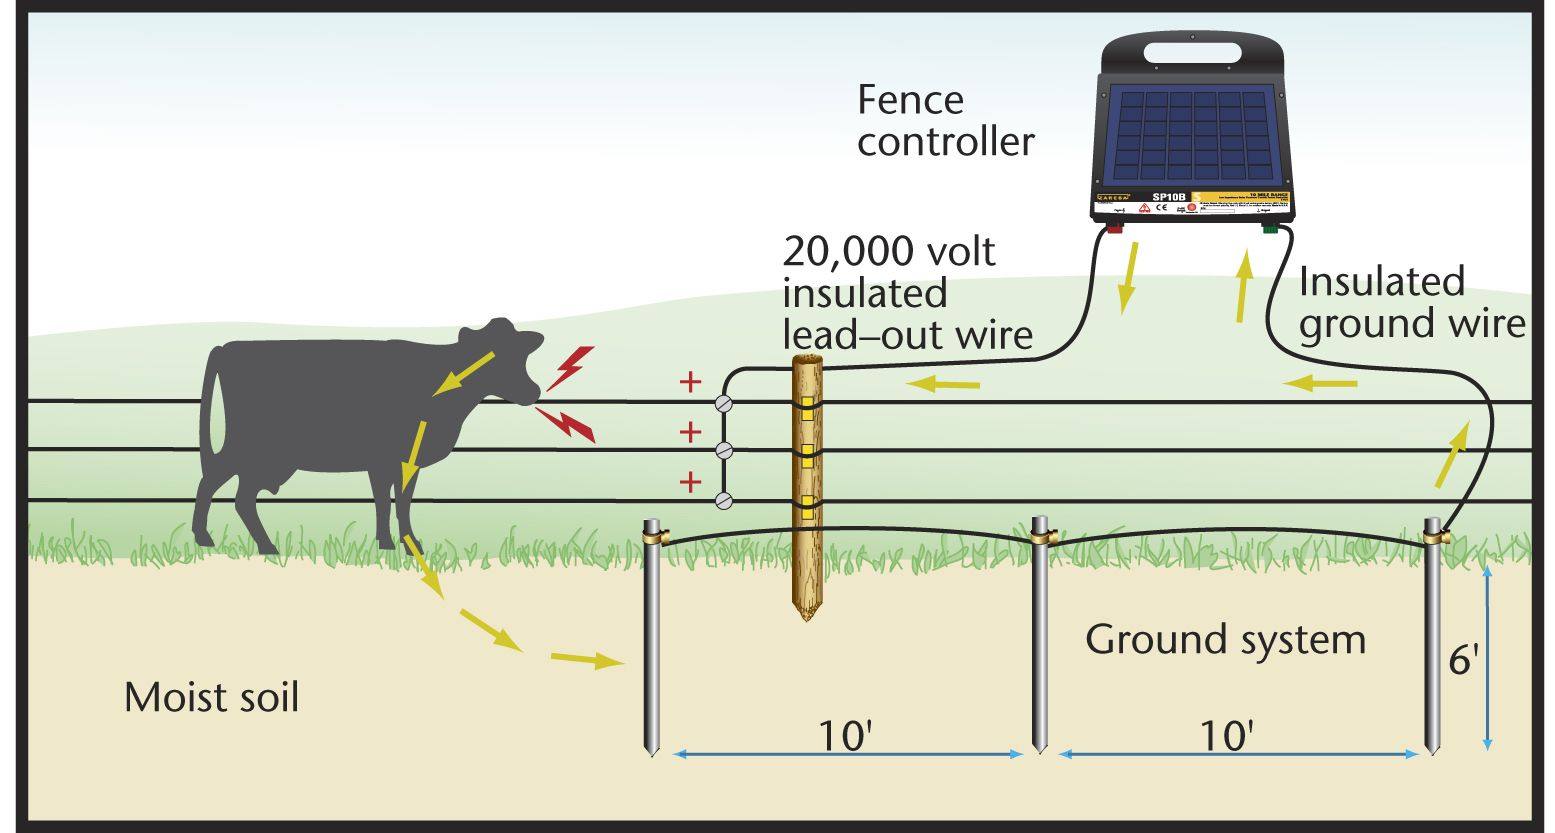 domestic electric fence wiring diagram 2 pin flasher unit ground rod installation grounding zareba how fencing works